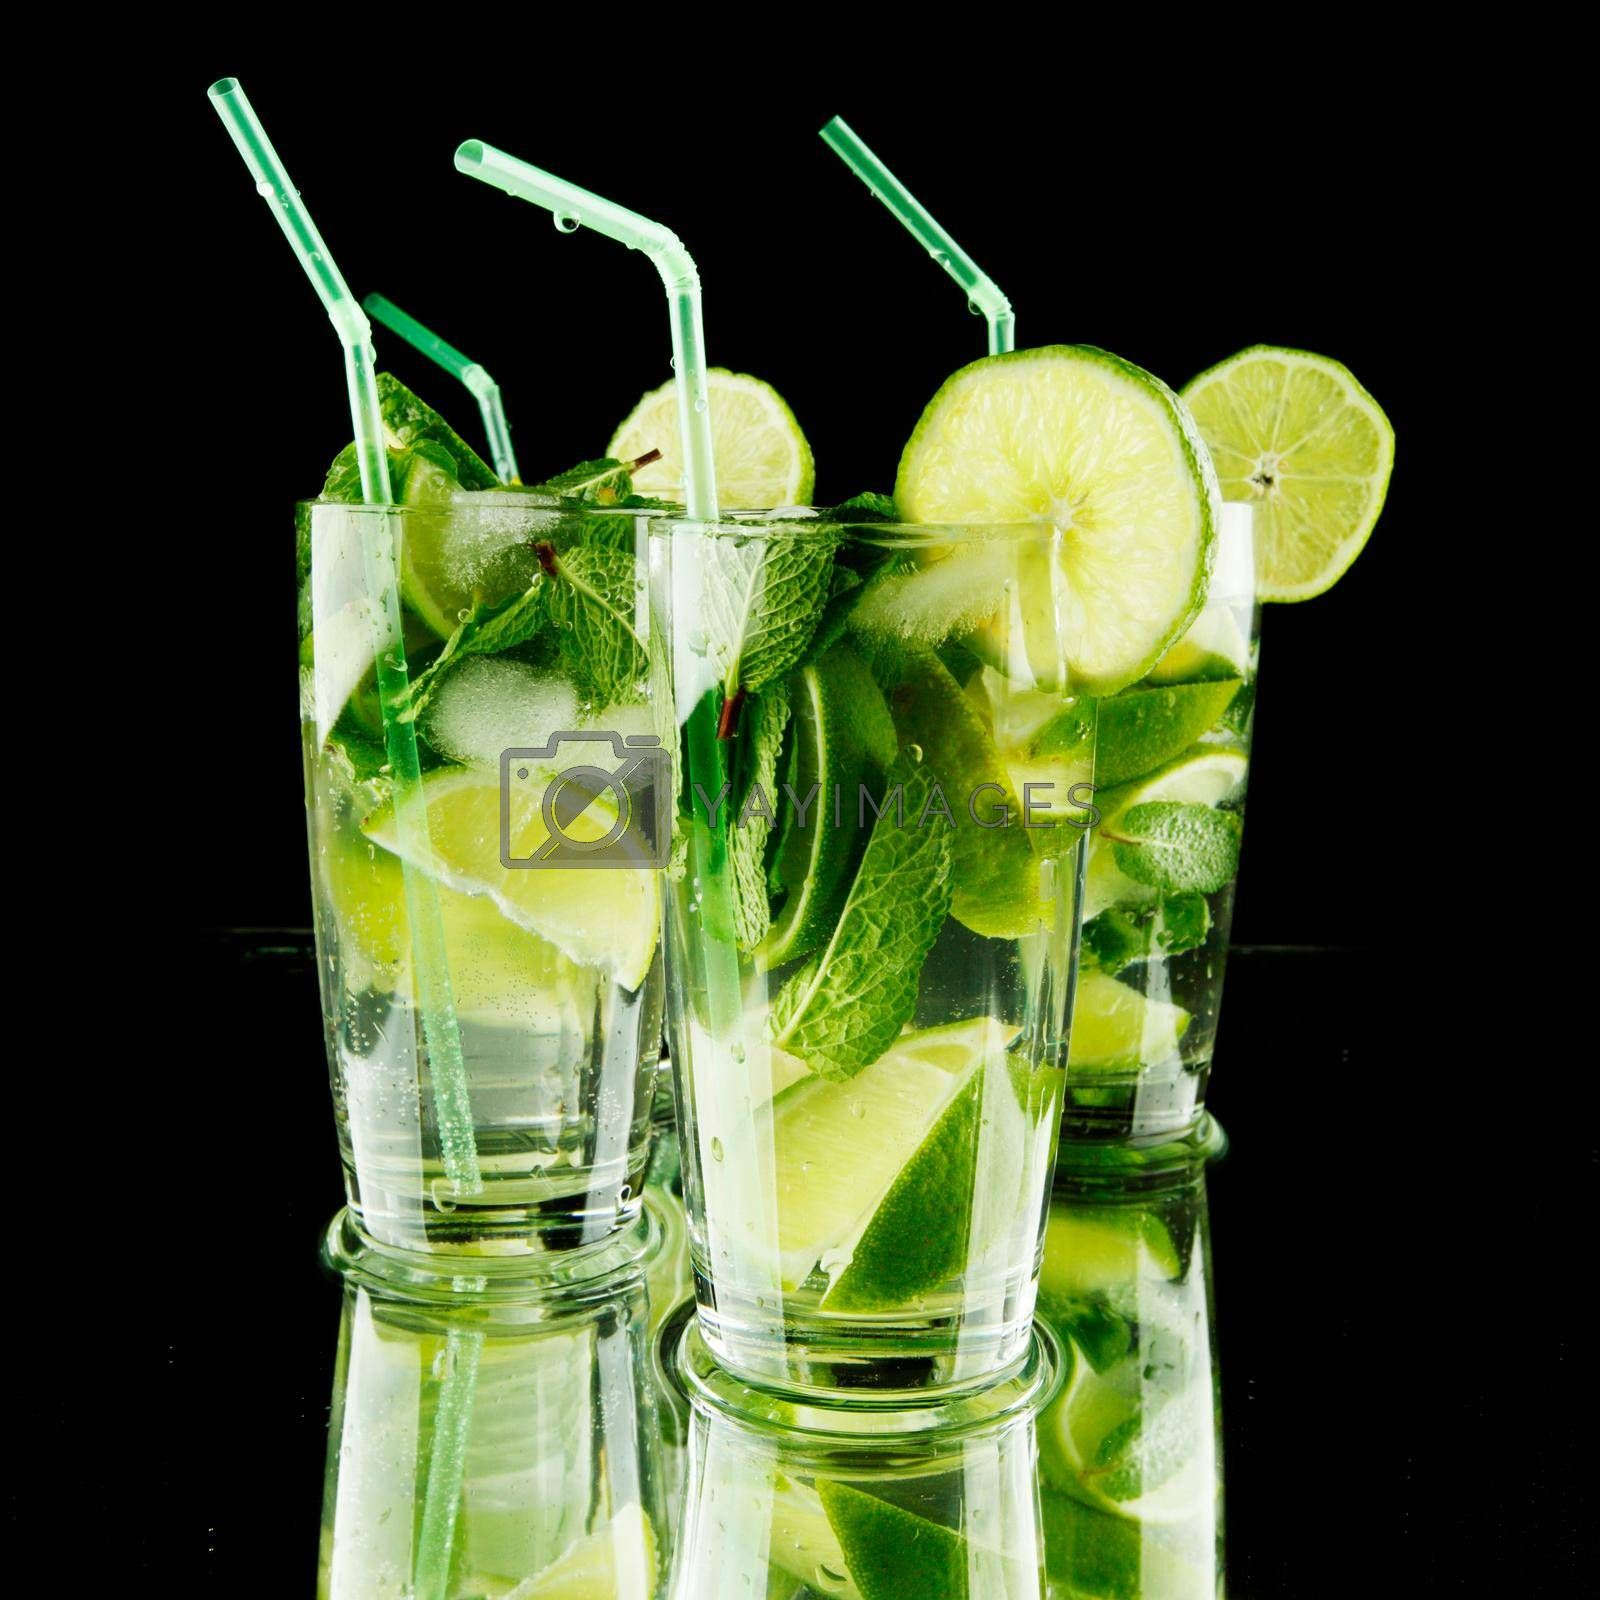 Royalty free image of Mojito cocktails on black by Yellowj